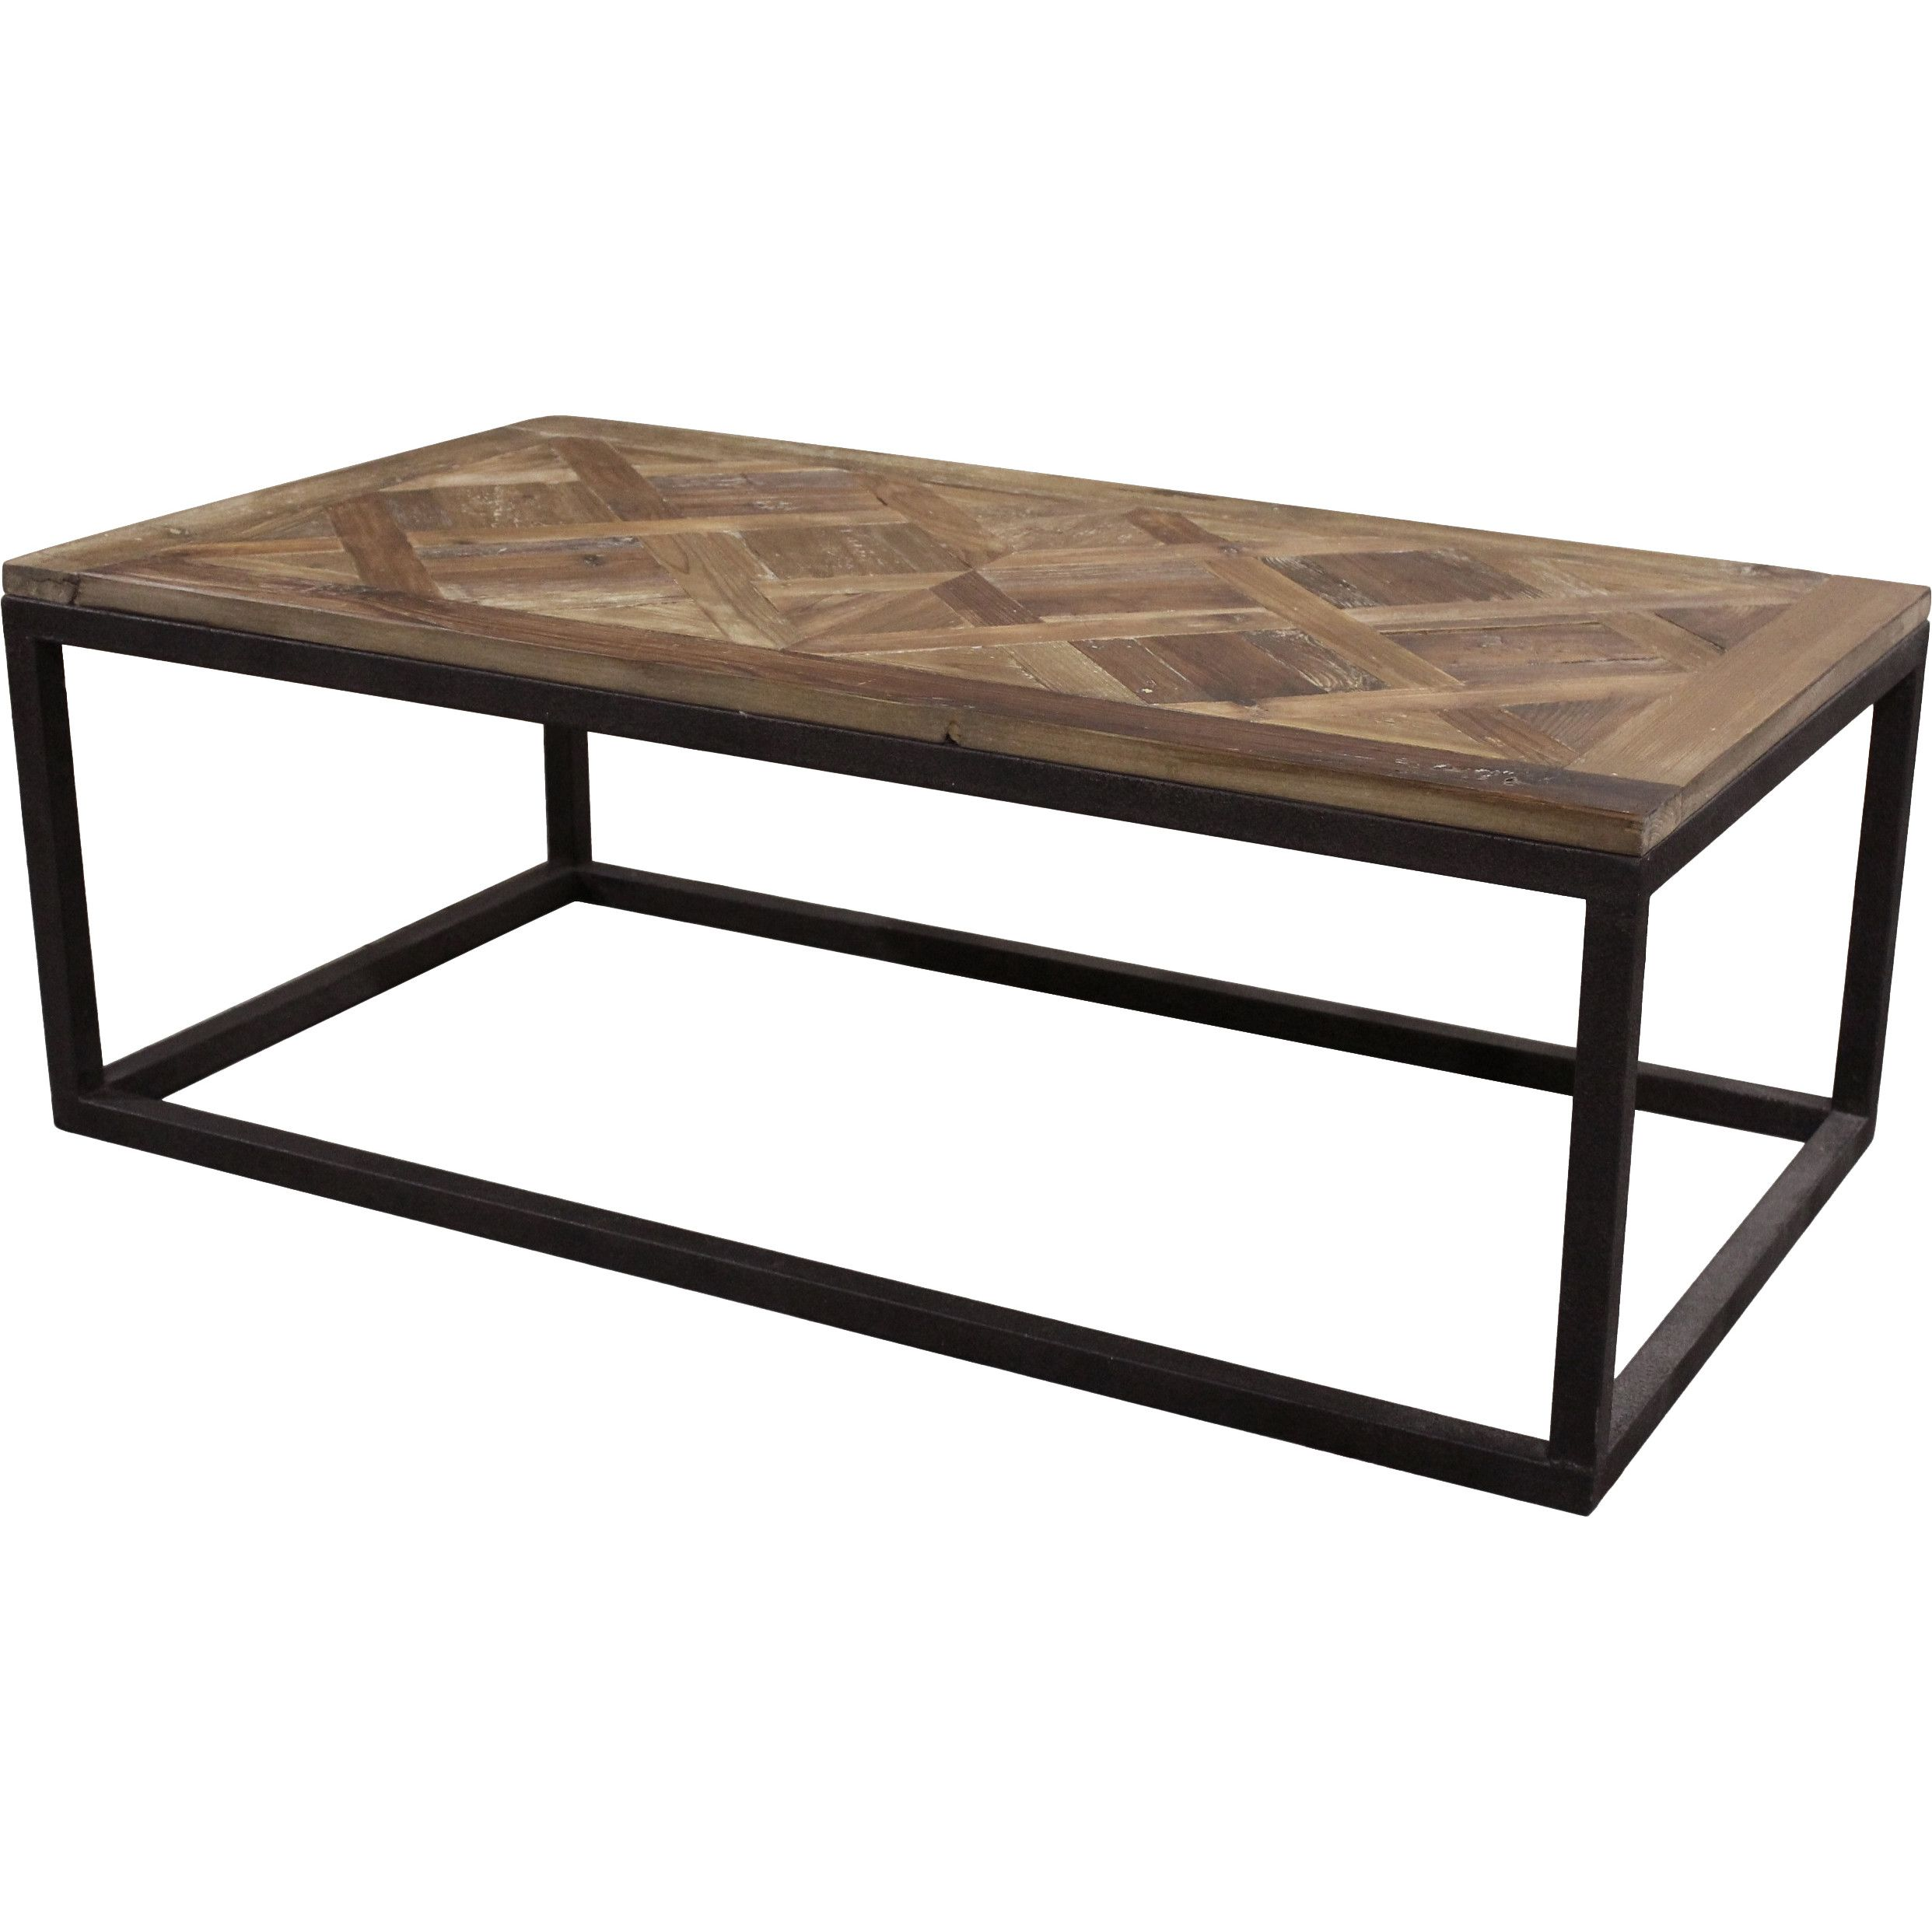 "August Grove Rouen Coffee Table ""Live Laugh Love"" Pinterest"